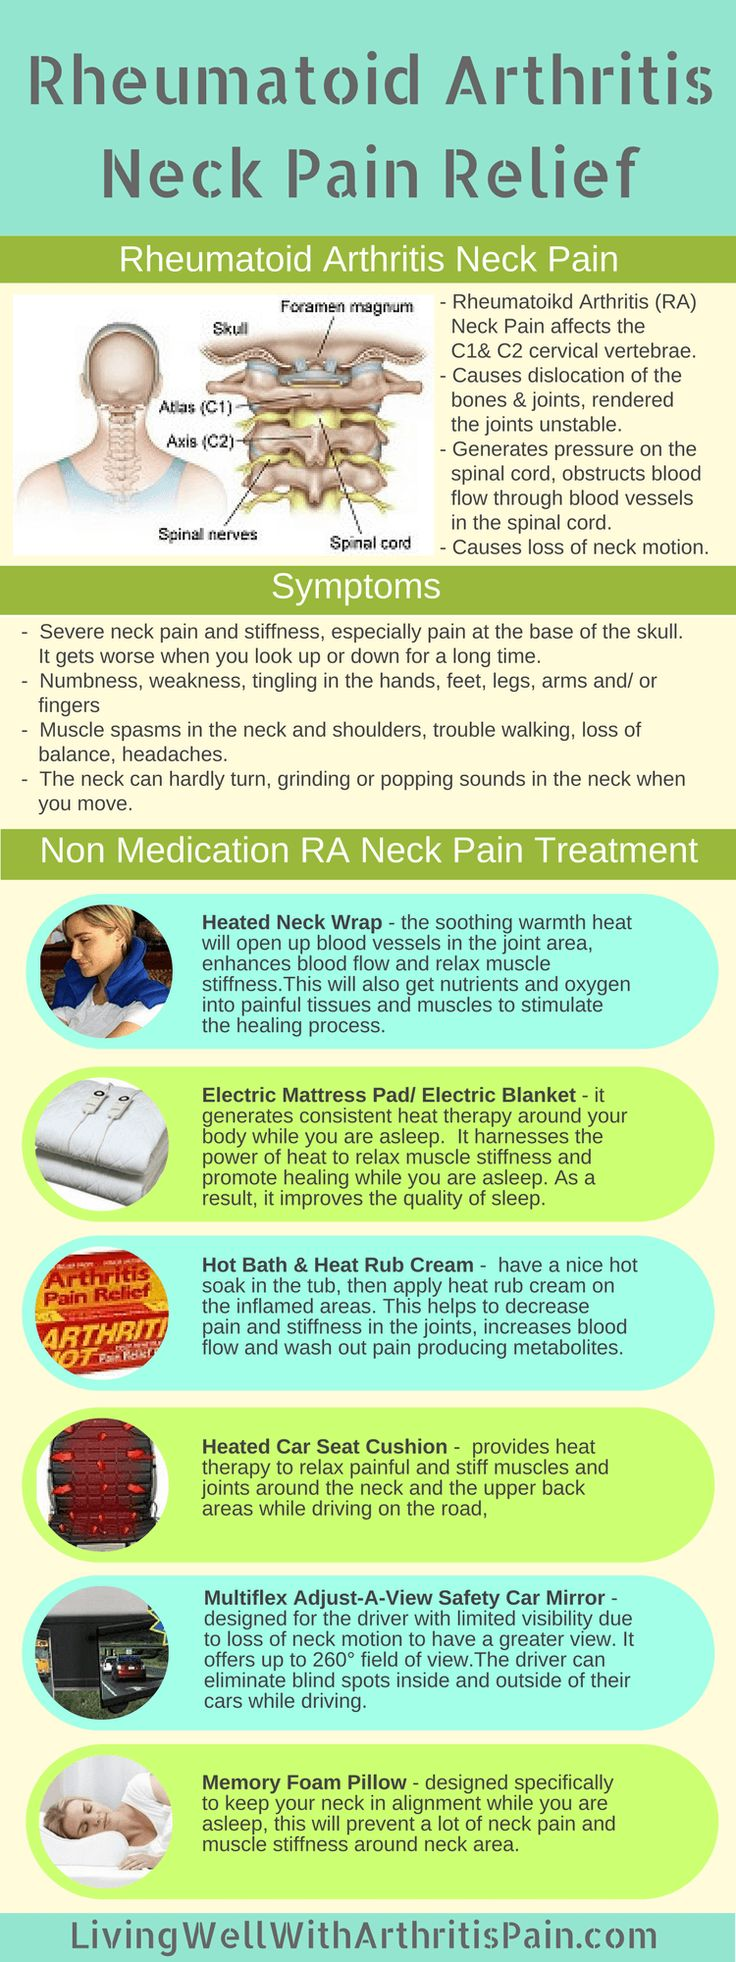 Top 6 Rheumatoid Arthritis Non-Medication Neck Pain Treatment